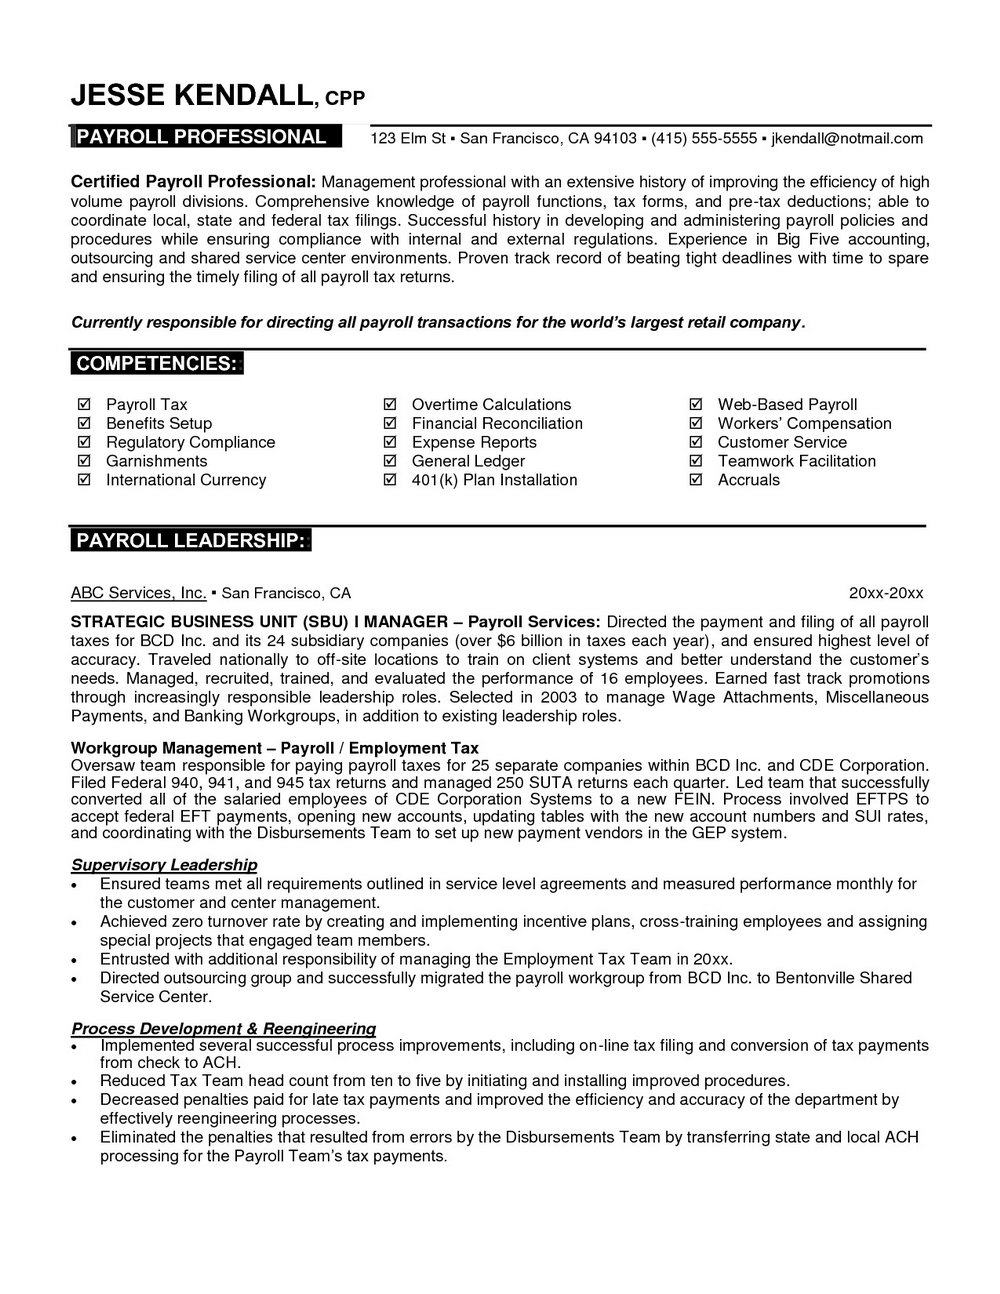 Professional Resume Writing Services In Ahmedabad